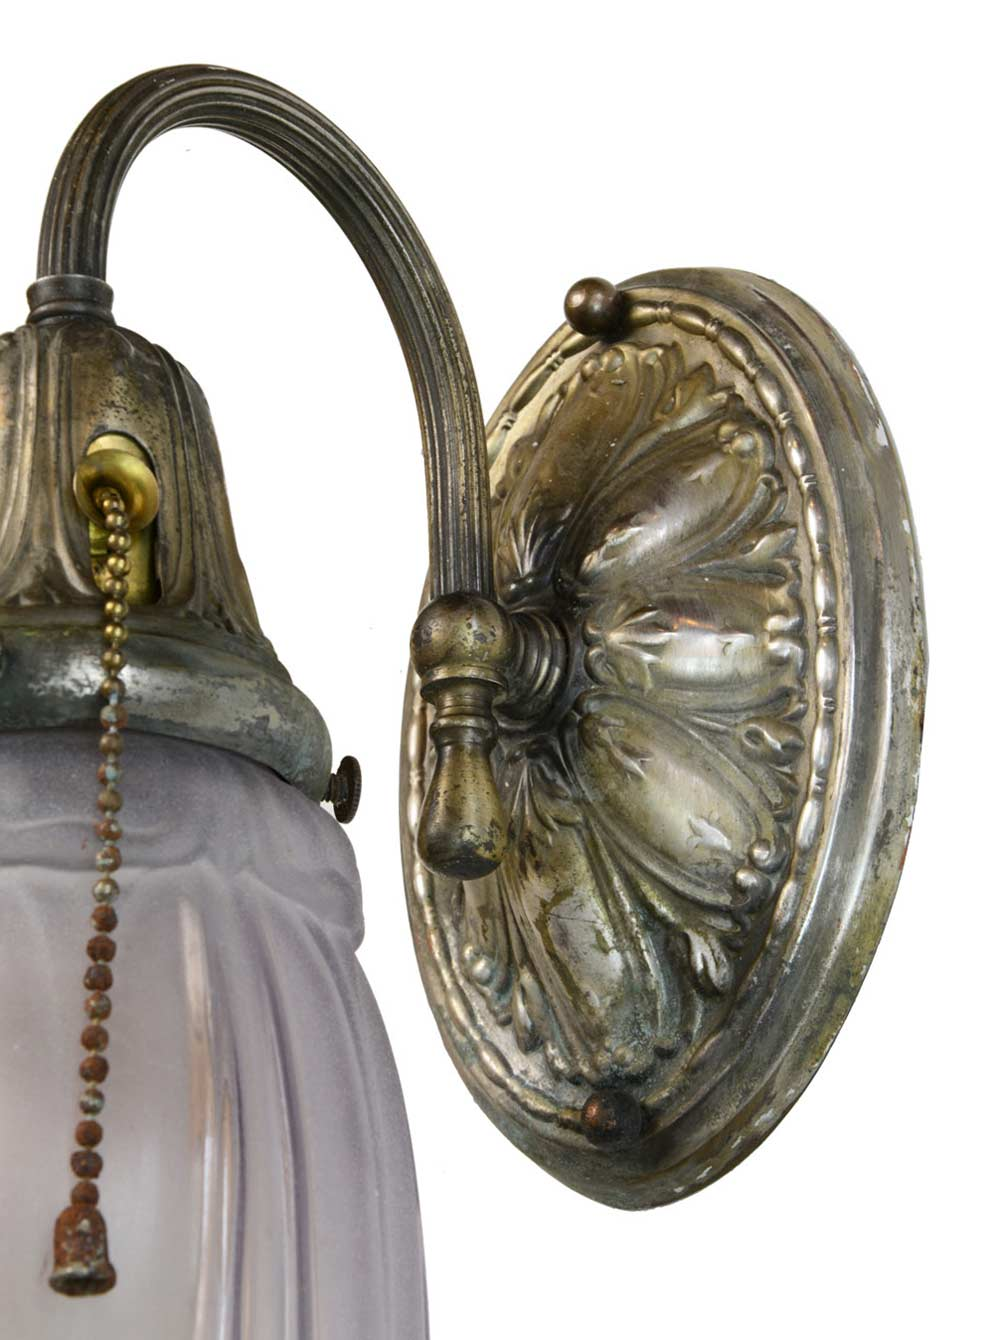 46665-silver-sconce-pair-with-shade-ANOTHER-DETAIL.jpg